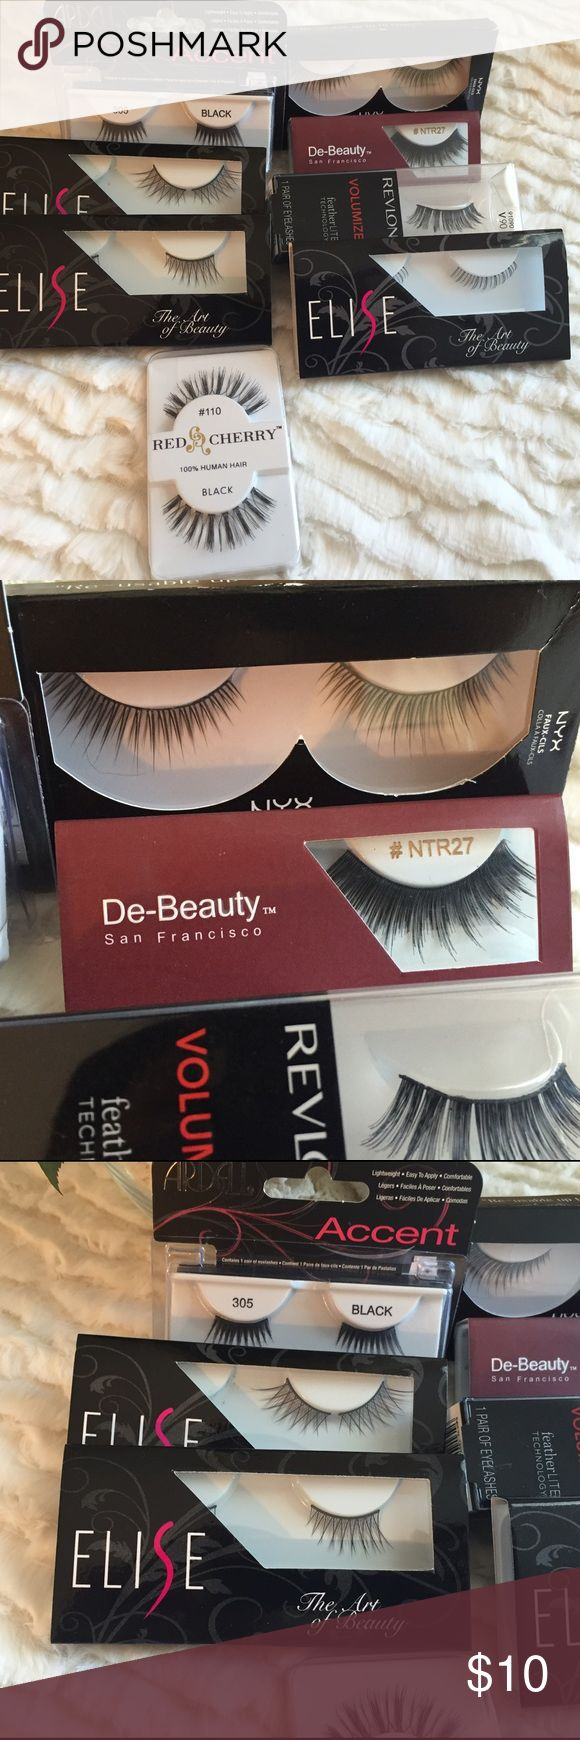 8 pairs of lashes Brands: Elise, NYX, Ardell, Revlon, De-Beauty, Red Cherry. 3 accents lashes, 4 full strips lashes, 1 lower lashes. Ardell Makeup False Eyelashes